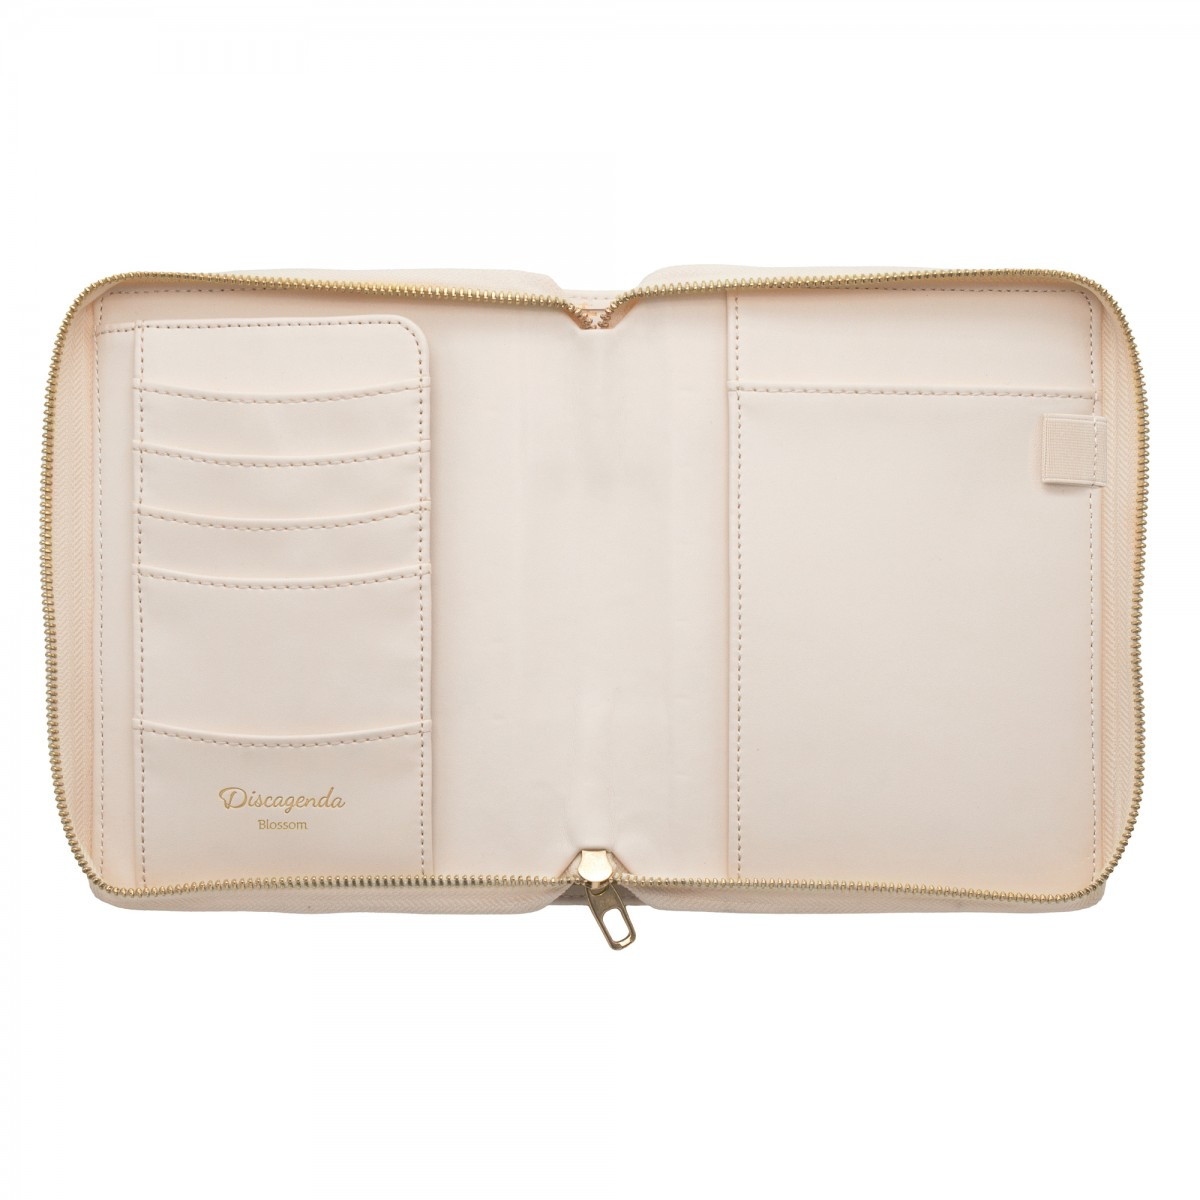 DISCAGENDA BLOSSOMS ROSEGOLD COVER PERSONAL ZIP CLOSURE